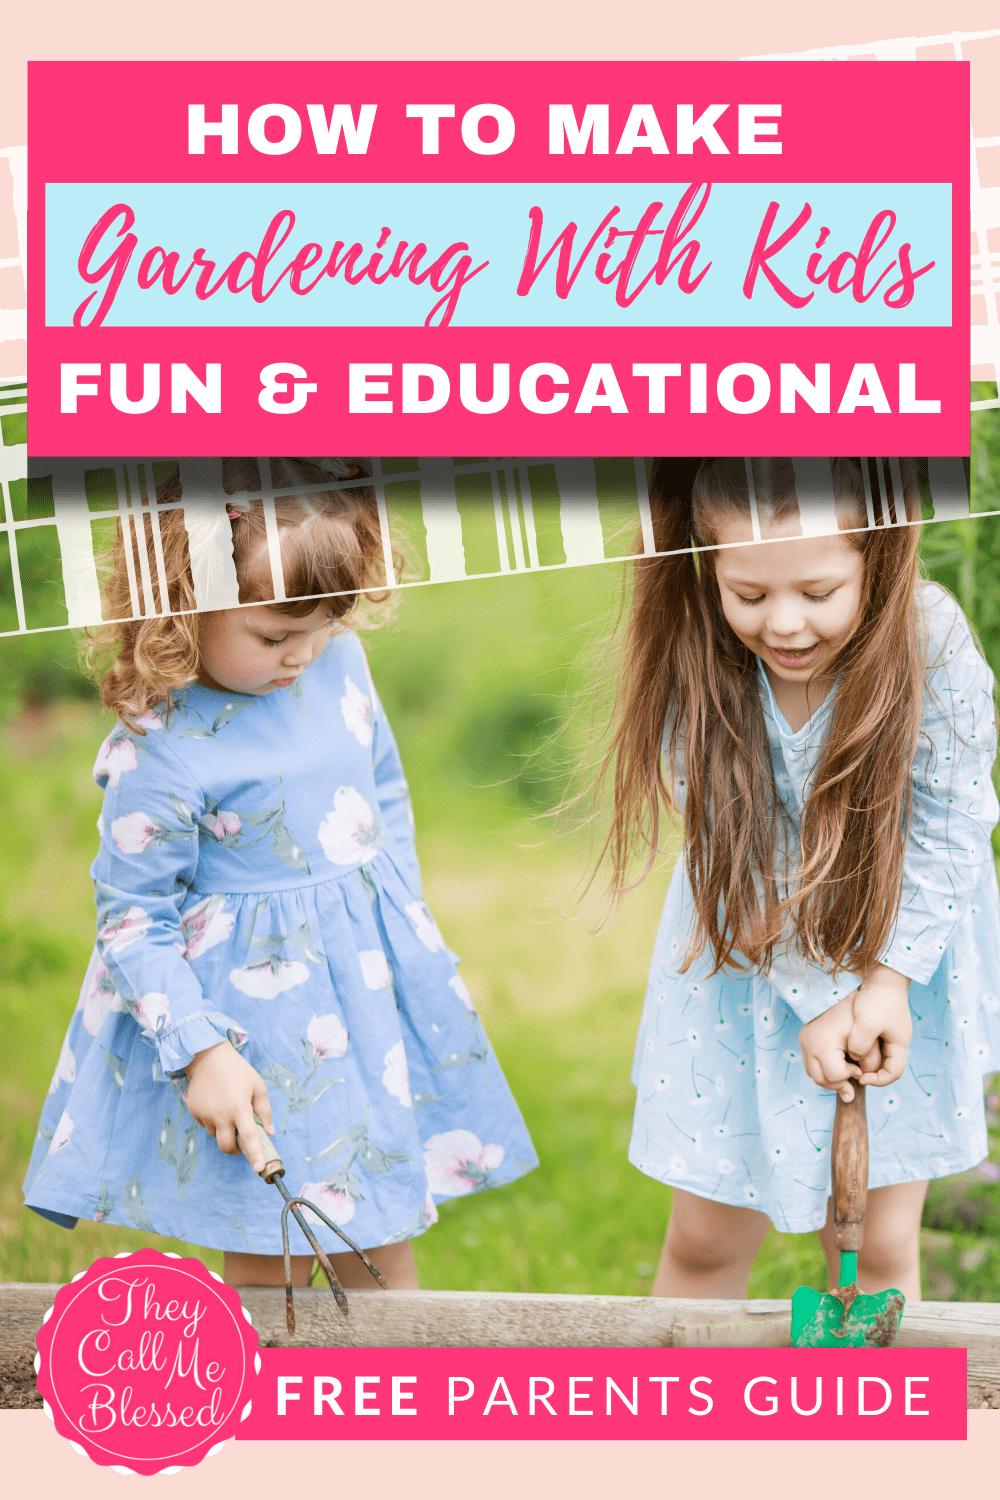 How to Make Gardening with Kids Fun & Educational